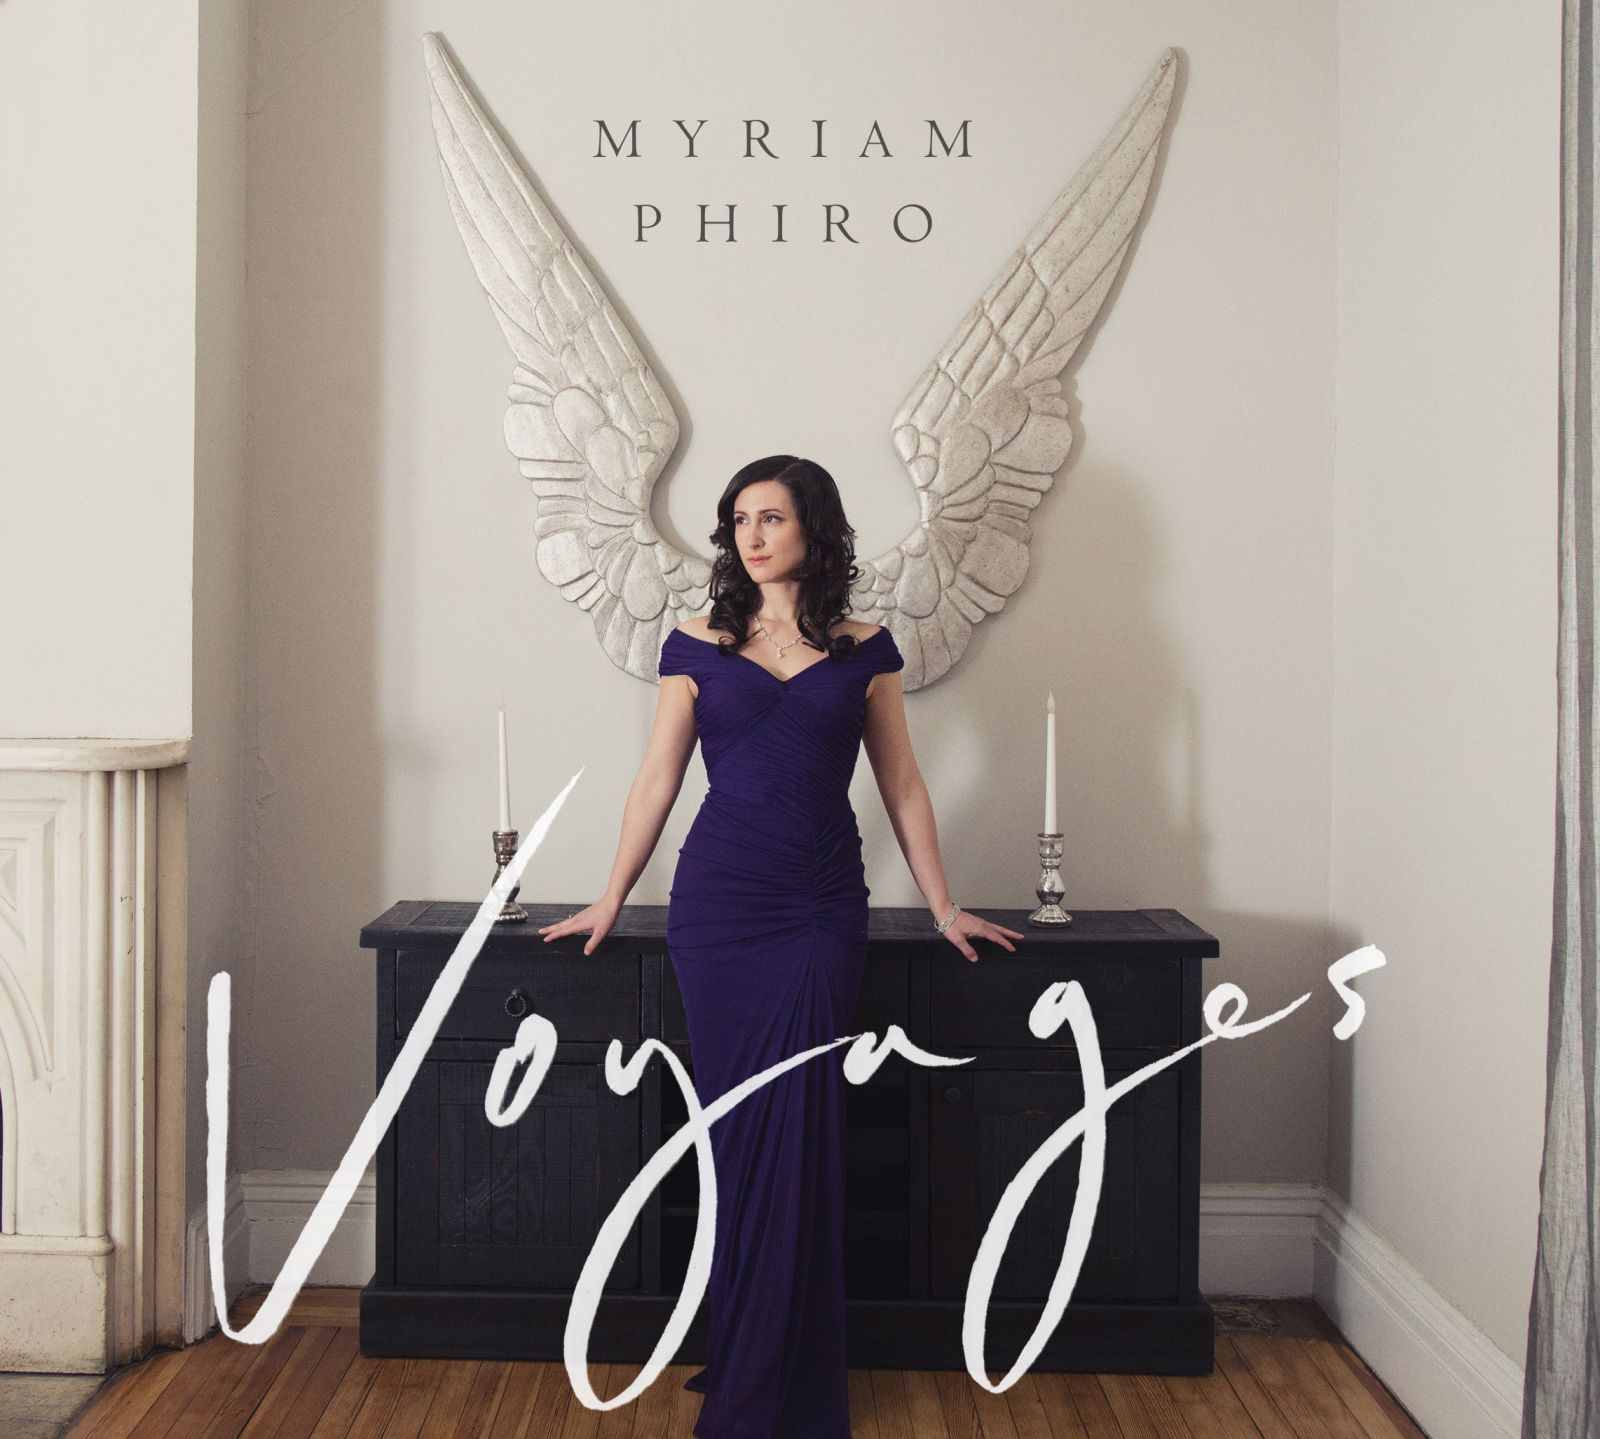 Cover art for Myriam Phiro's debut album Voyages